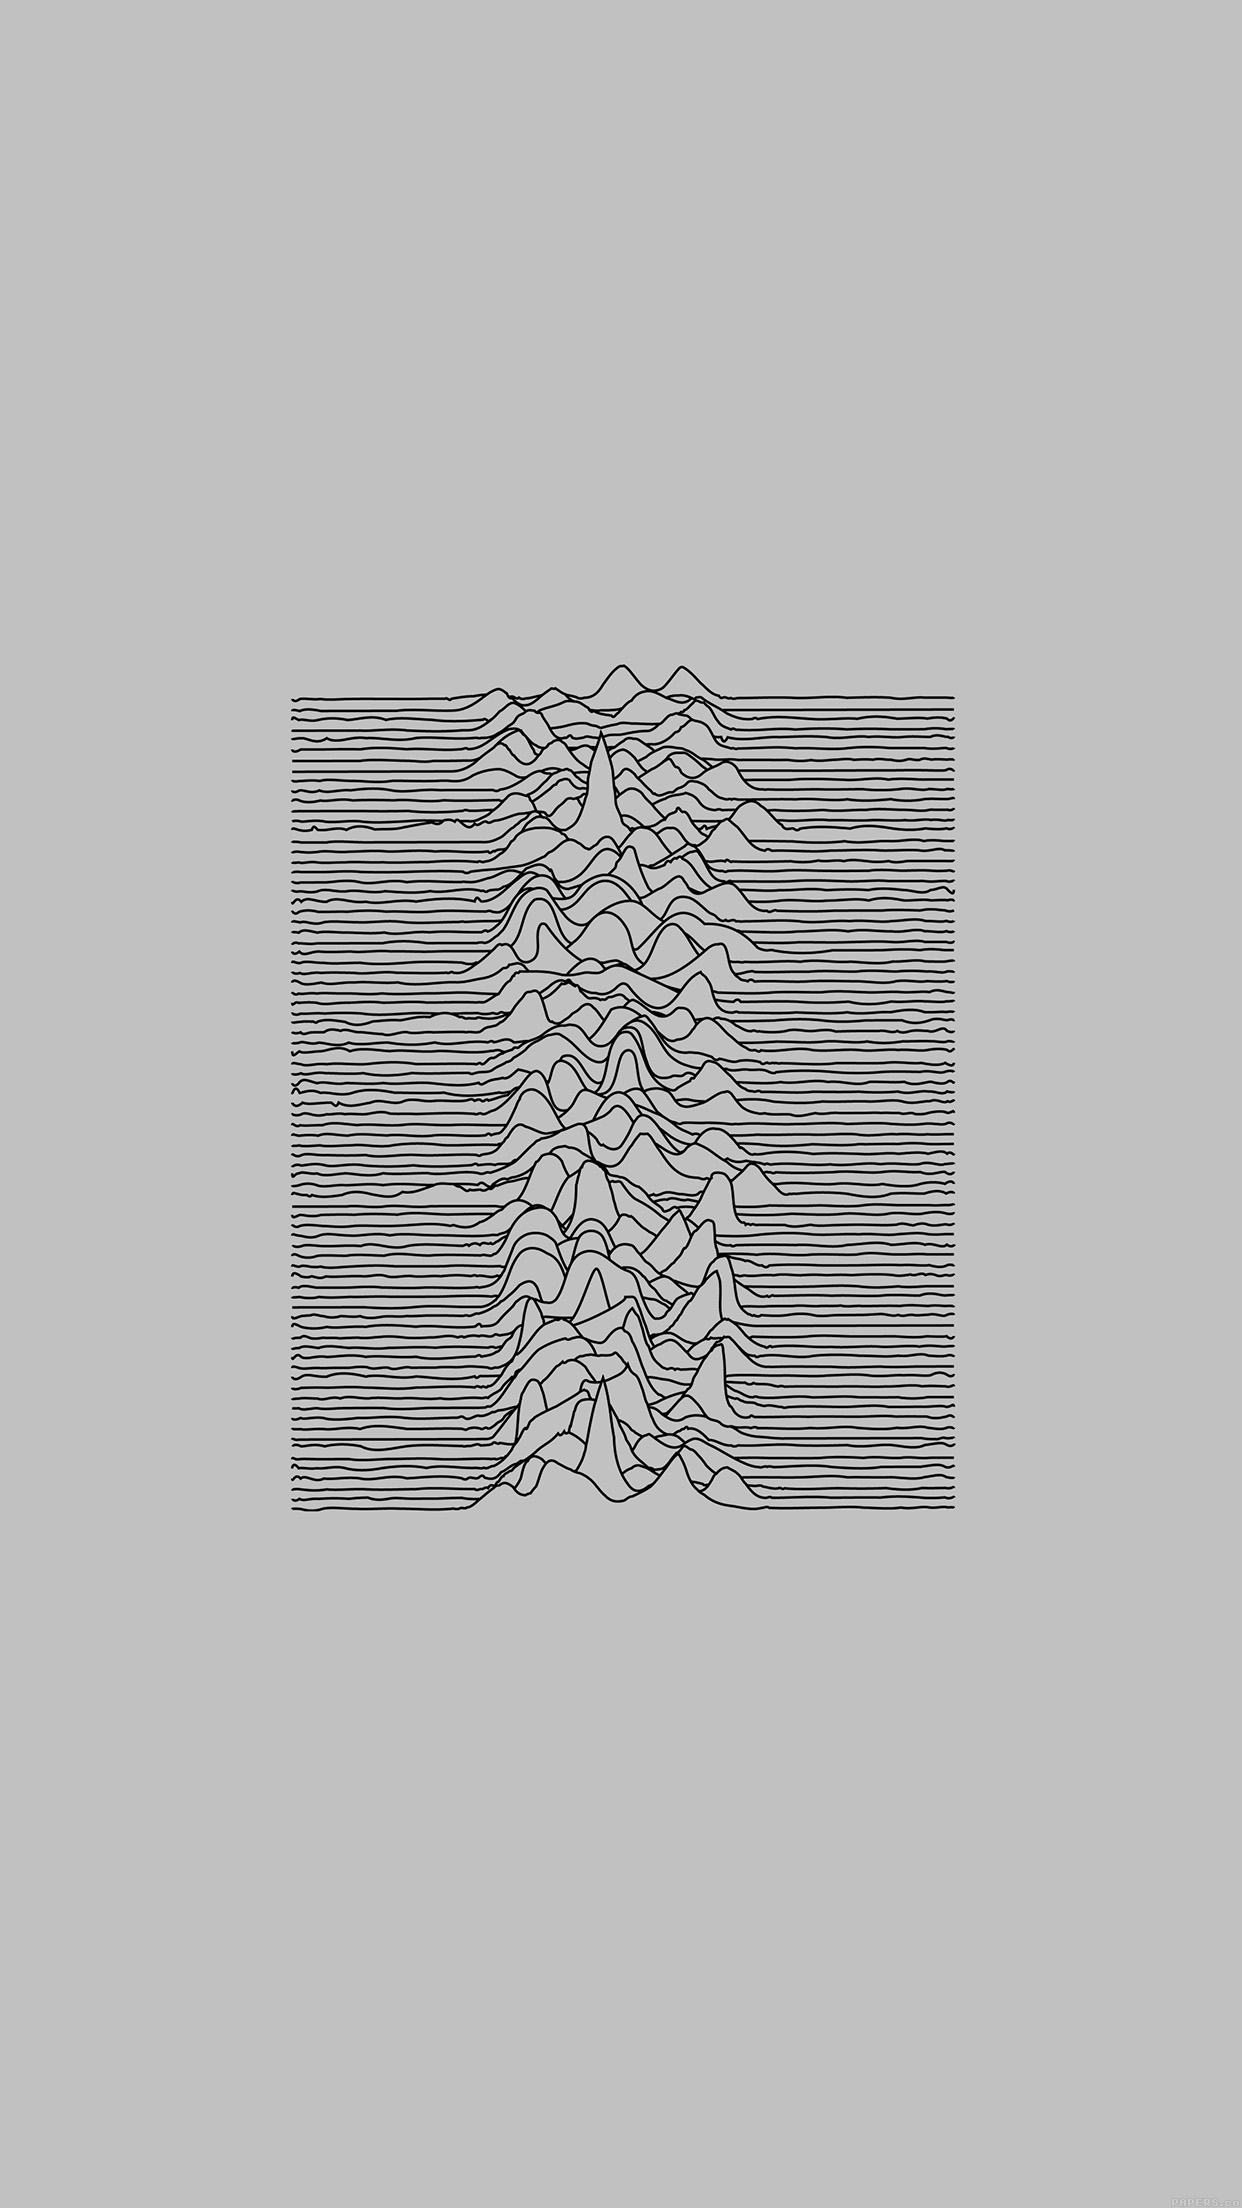 Car Wallpaper Samsung Ai51 Joy Division Unknown Pleasures White Art Minimal